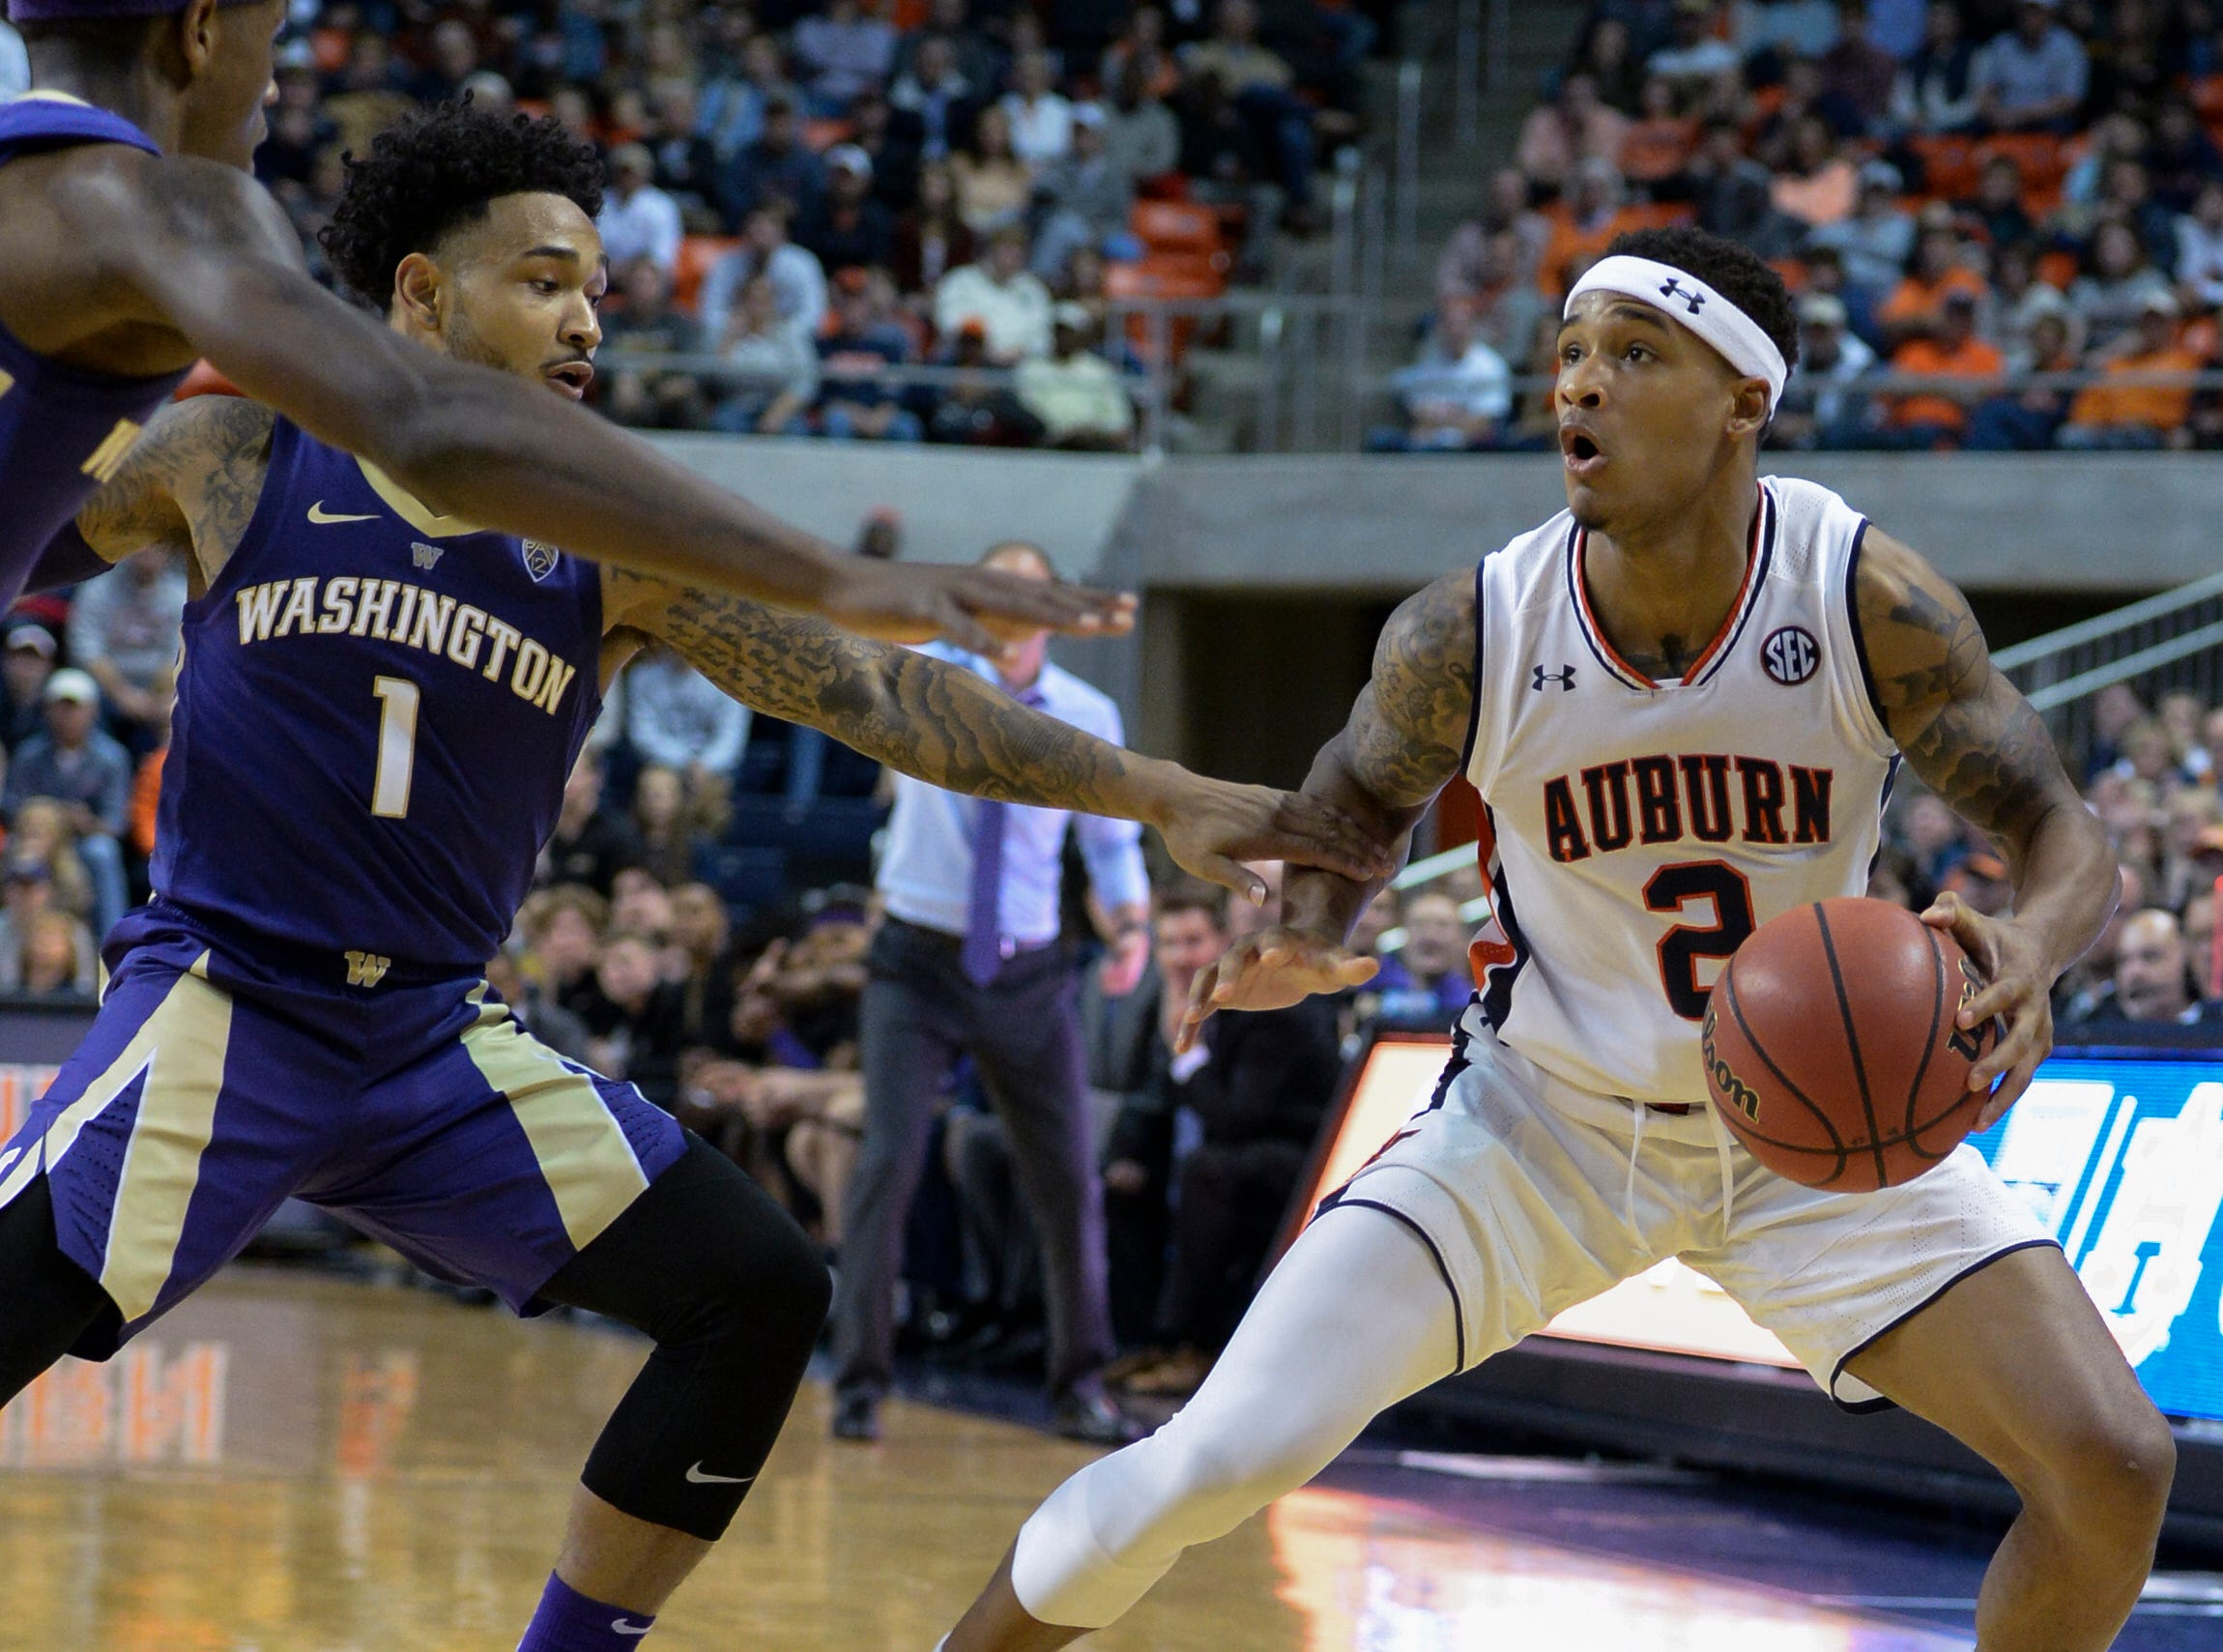 Nov 9, 2018; Auburn, AL, USA; Washington Huskies guard David Crisp (1) defends against Auburn Tigers guard Bryce Brown (2) at Auburn Arena. Mandatory Credit: Julie Bennett-USA TODAY Sports